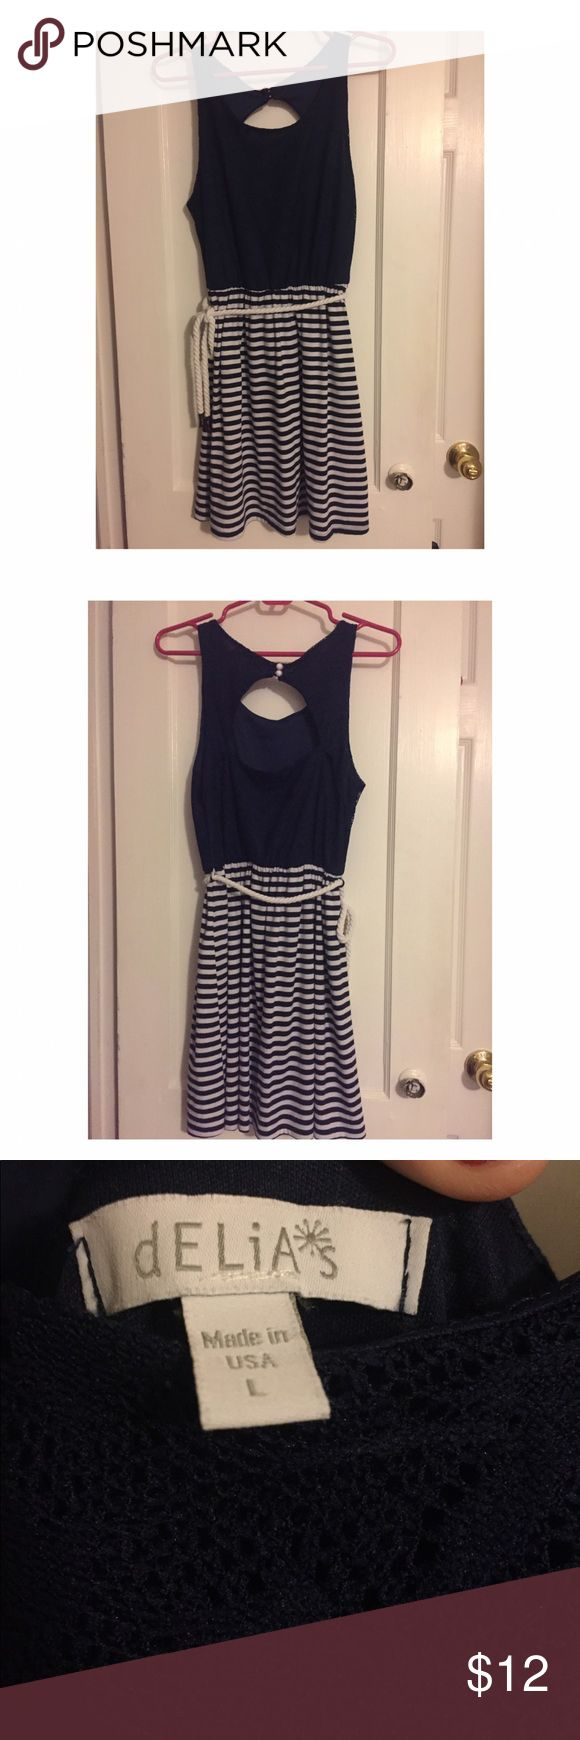 Nautical Summer Dress The perfect dress for beach & boat parties! ⚓️⚓️⚓️⚓️⚓️⚓️⚓️⚓️⚓️⚓️⚓️⚓️⚓️⚓️⚓️⚓️⚓️ Size: Large Colors: Navy Blue & White Condition: lightly worn, no tears or issues * Machine Washable * Comes with rope tie around waist Delia's Dresses Mini